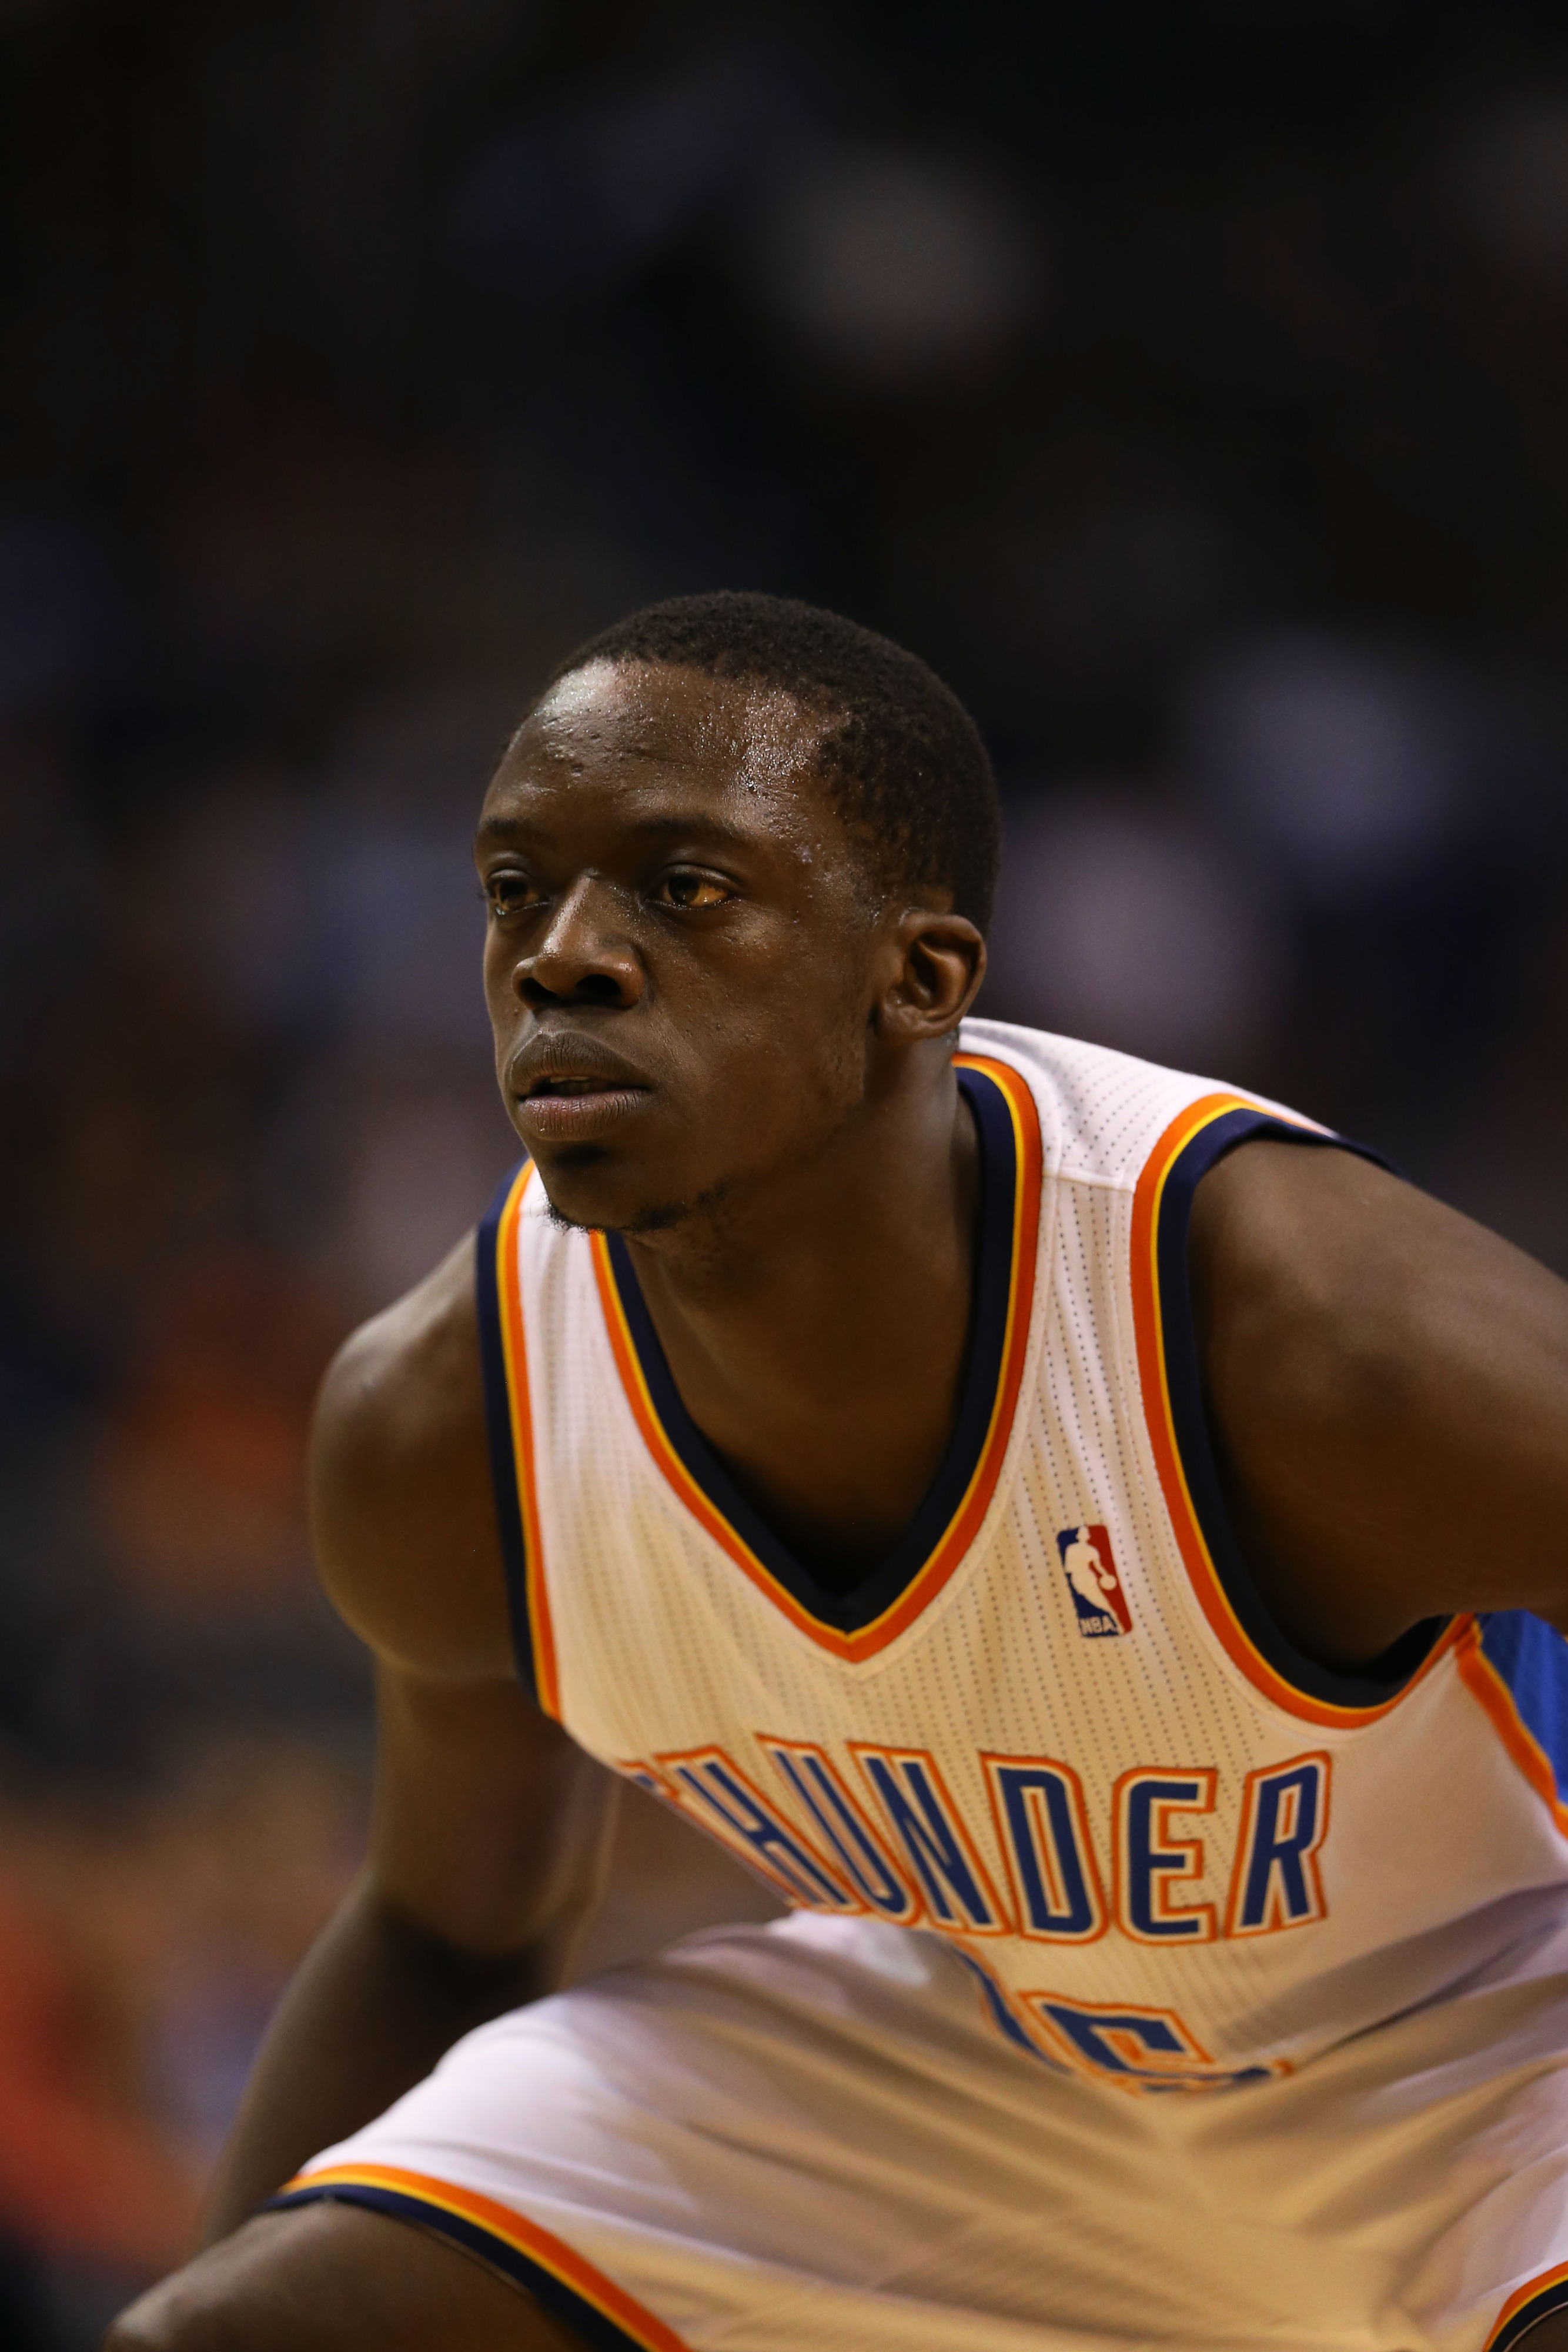 Who's ready for some Reggie Jackson domination?